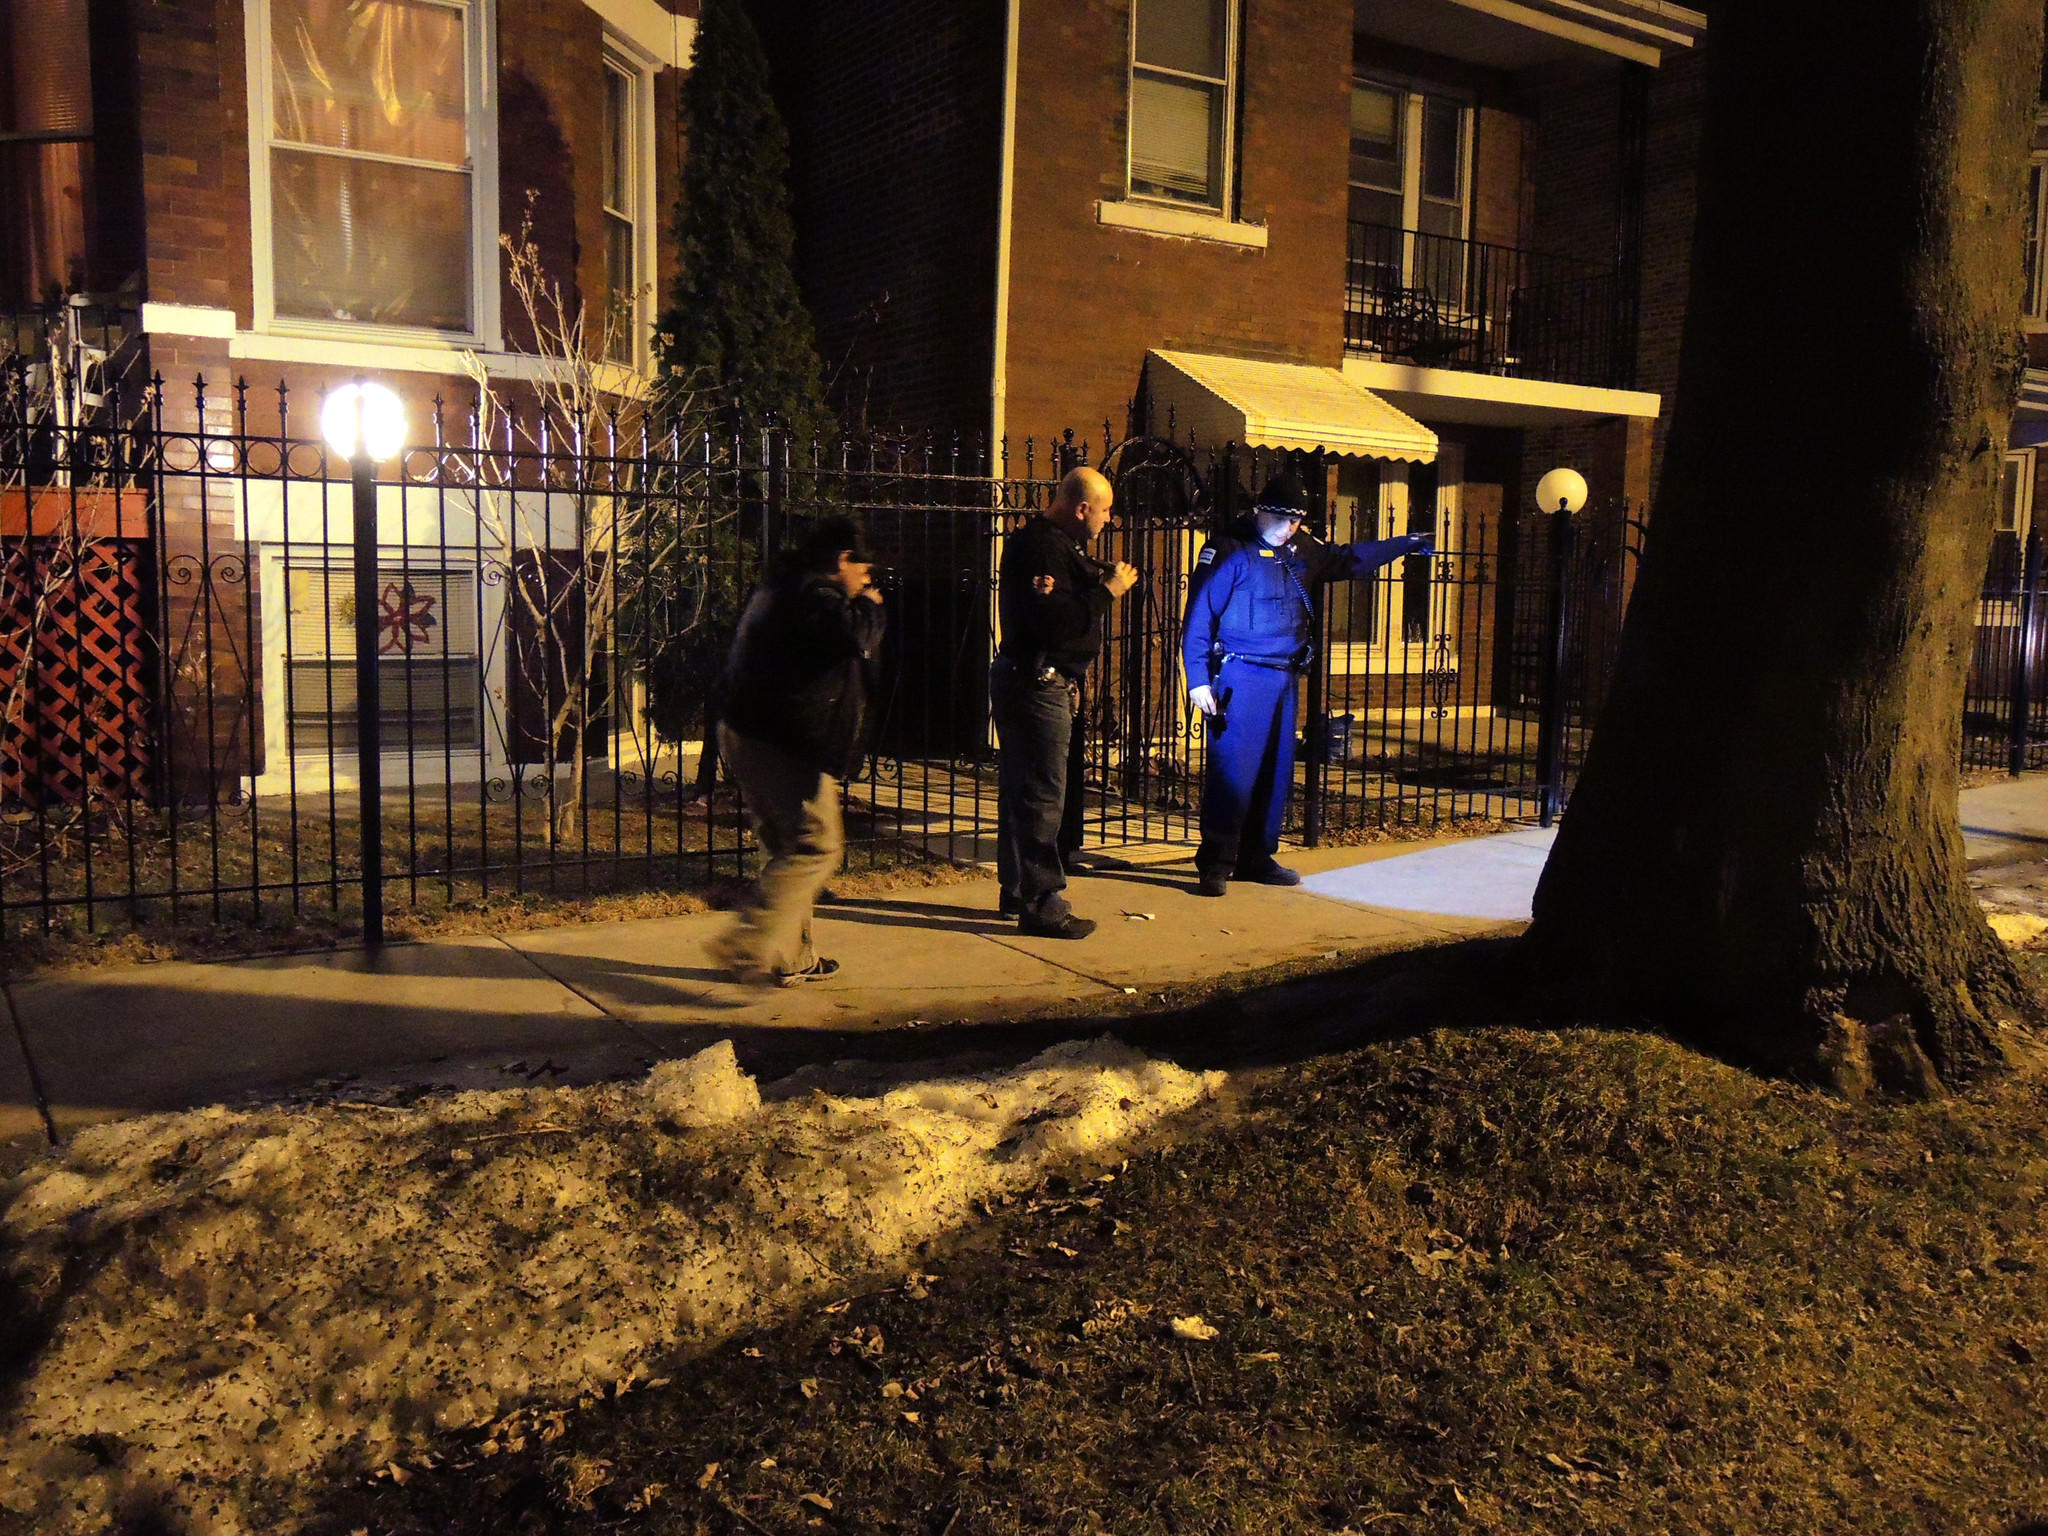 Police investigate a Little Village crime scene where a 21-year-old man was shot.